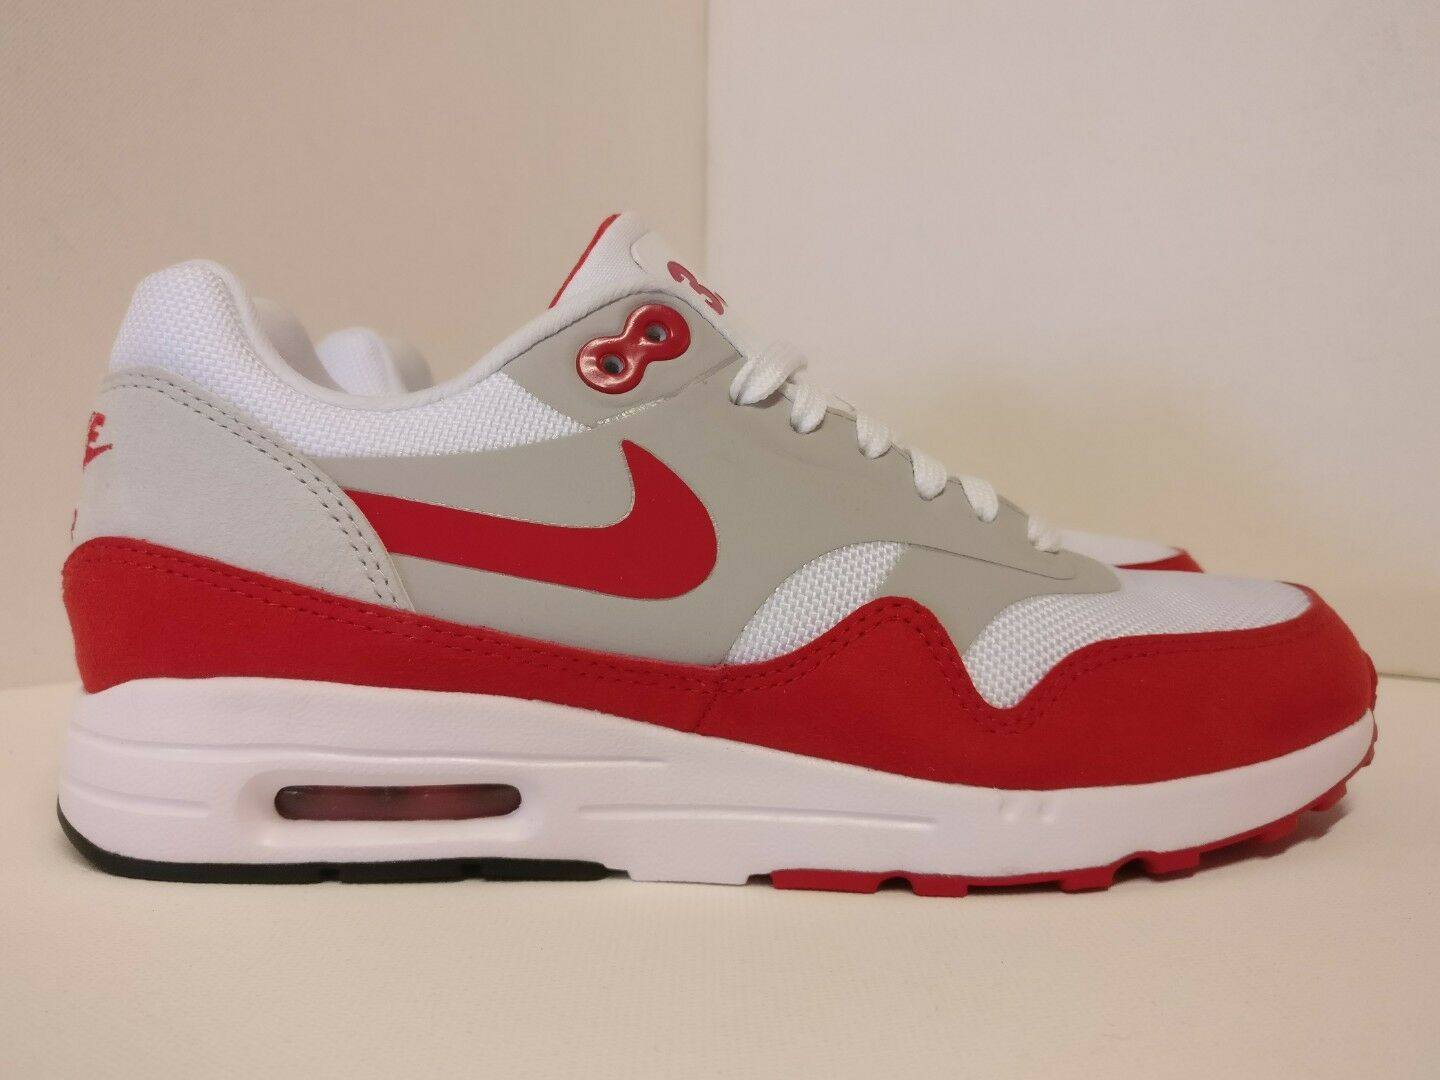 Nike Damenschuhe Air Max Day 1 Ultra 2.0 University LE UK 3.5 Weiß University 2.0 ROT 908489101 6ff231